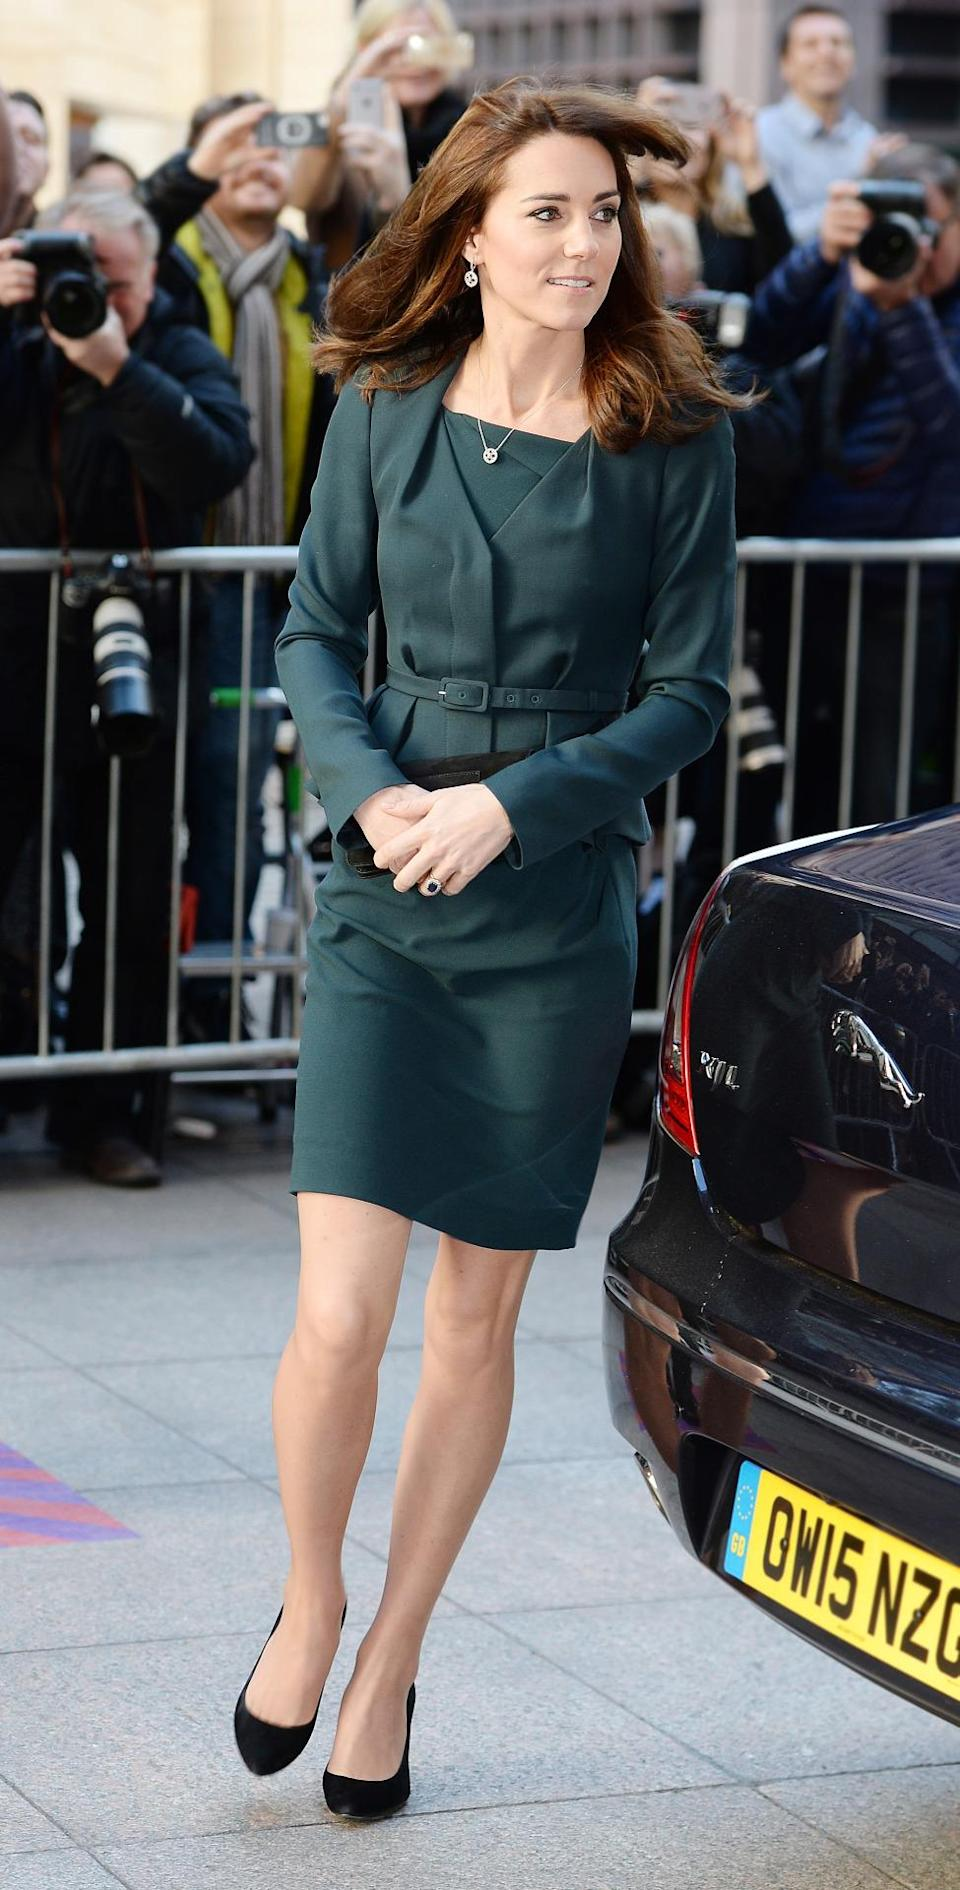 <p>For another charity event with William, Kate chose a dark green suit by British retailer, L.K. Bennett. Her shoes and bag were again designed by Stuart Weitzman and Mulberry respectively. </p><p><i>[Photo: PA]</i></p>